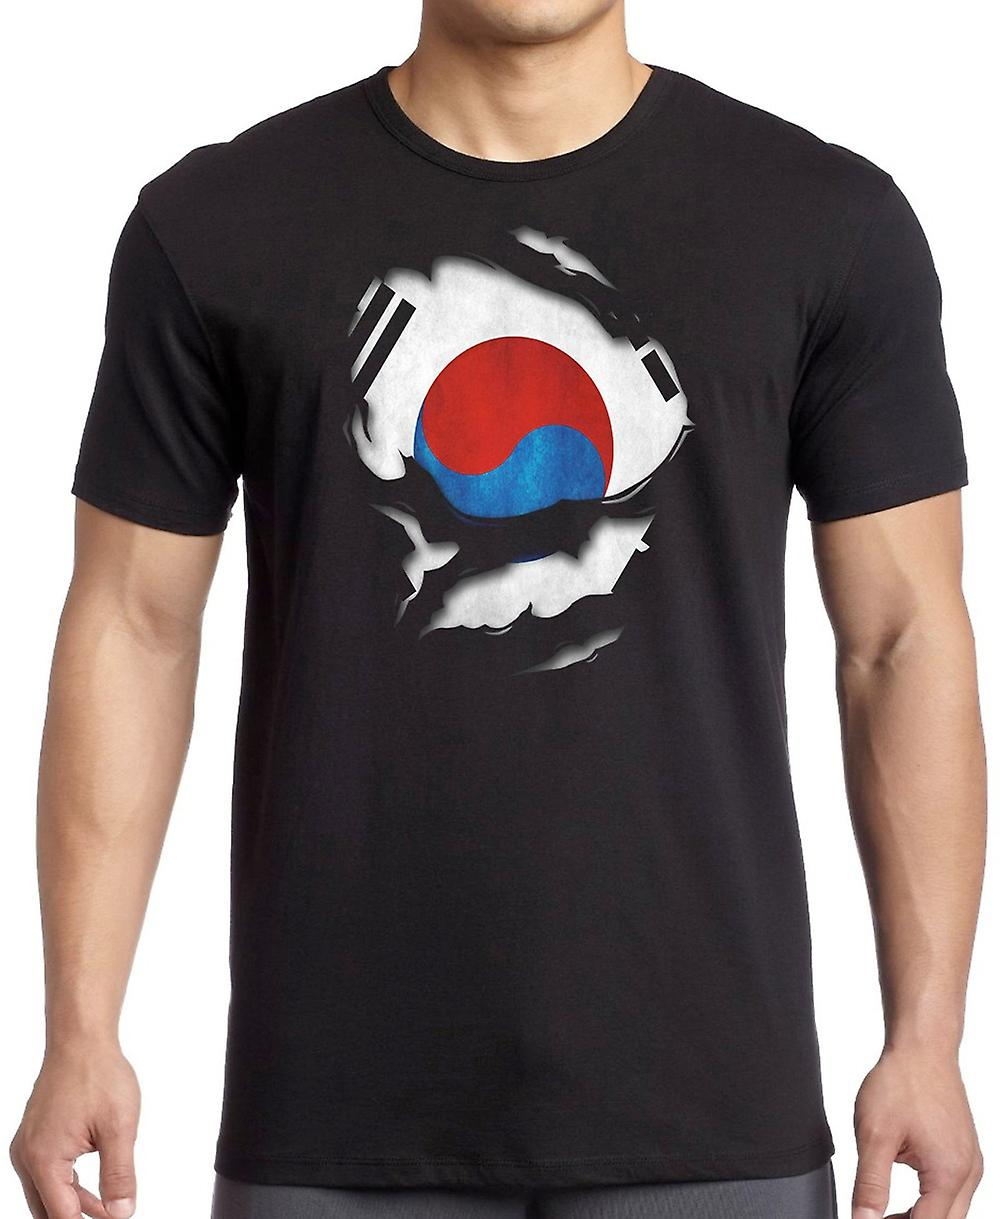 South Korea Ripped Effect Under Shirt T Shirt